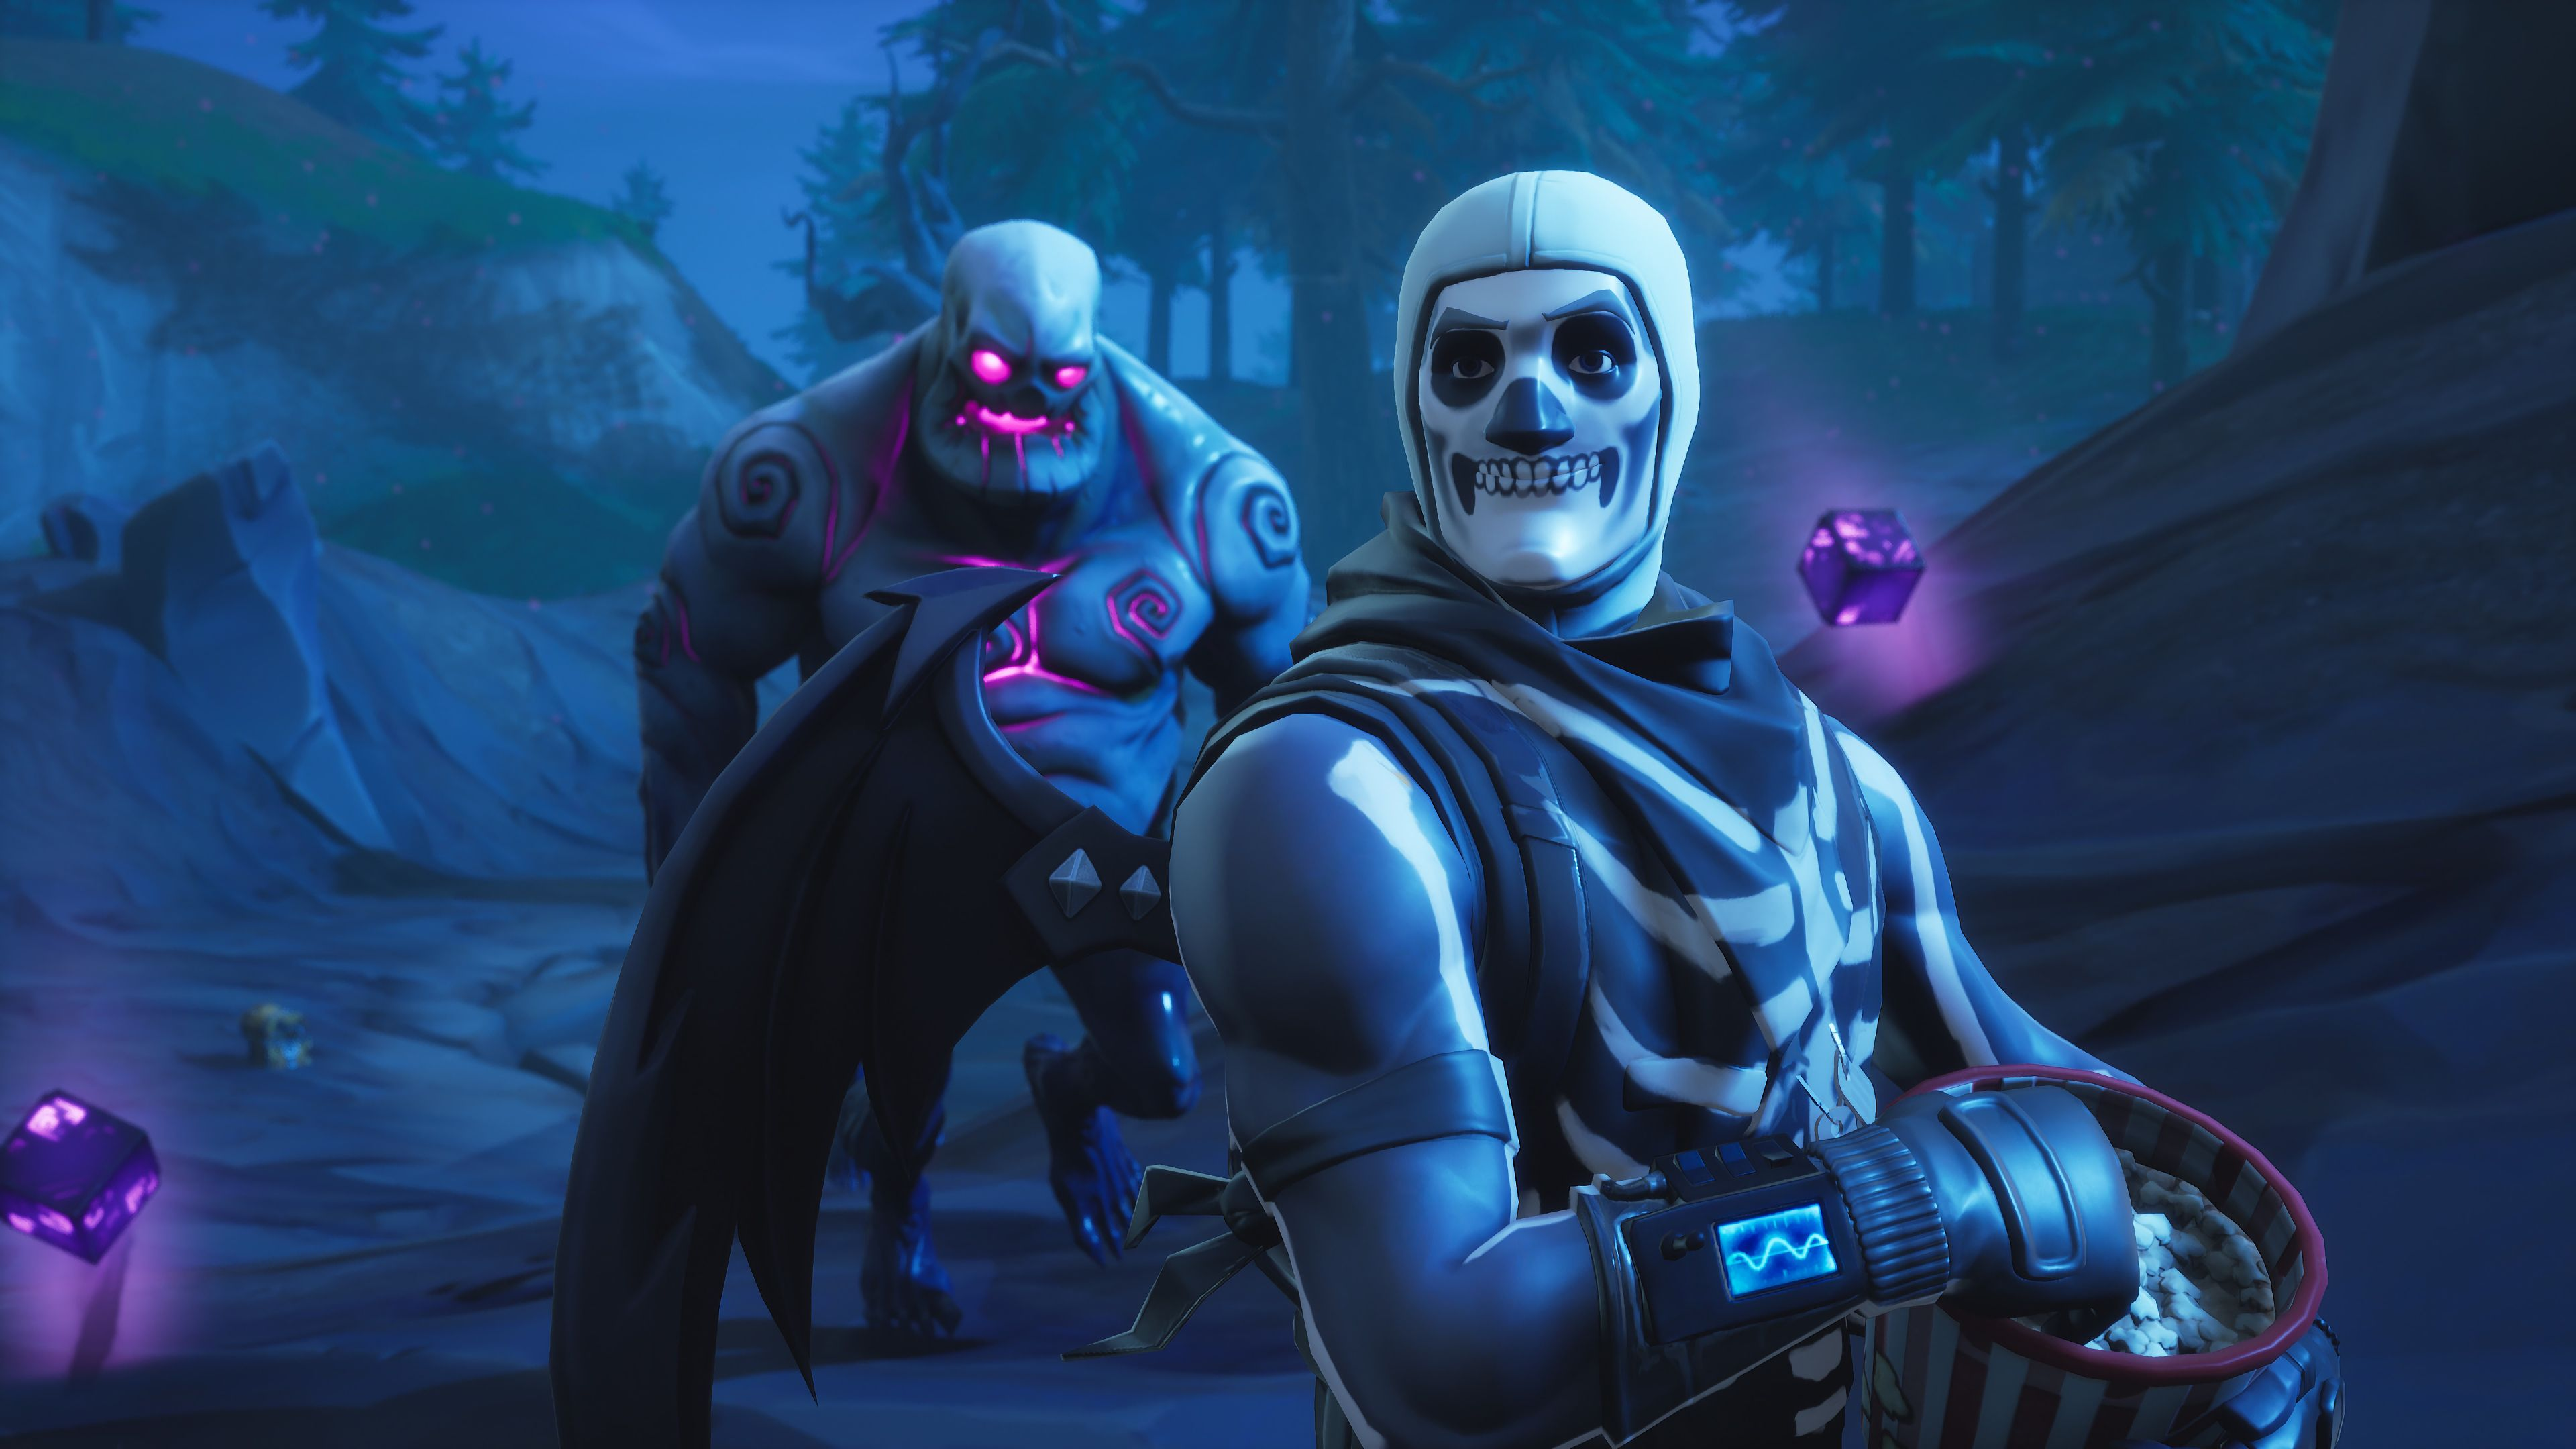 Fortnite Halloween Wallpapers Top Free Fortnite Halloween Backgrounds Wallpaperaccess